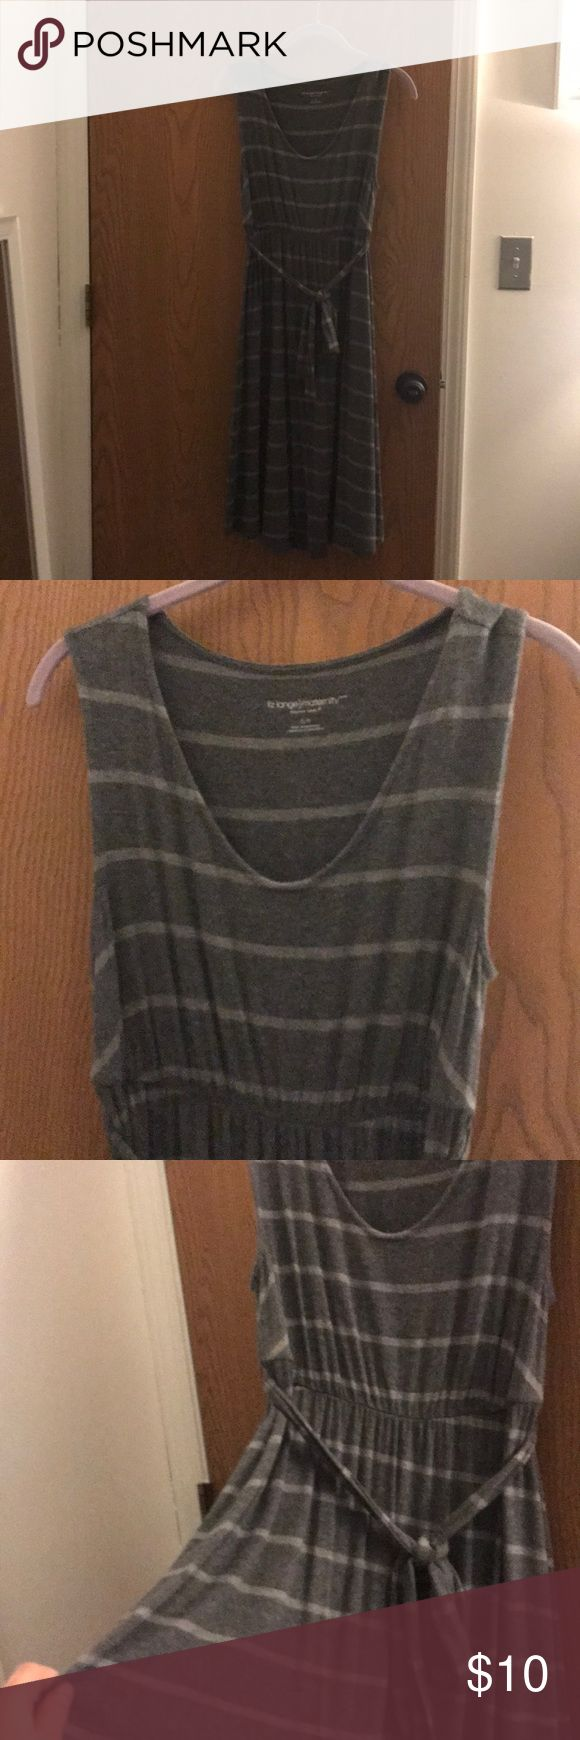 Gray striped maternity dress Gray striped maternity dress. Super comfy and stretchy. In good used condition-no issues. Liz Lange for Target Dresses